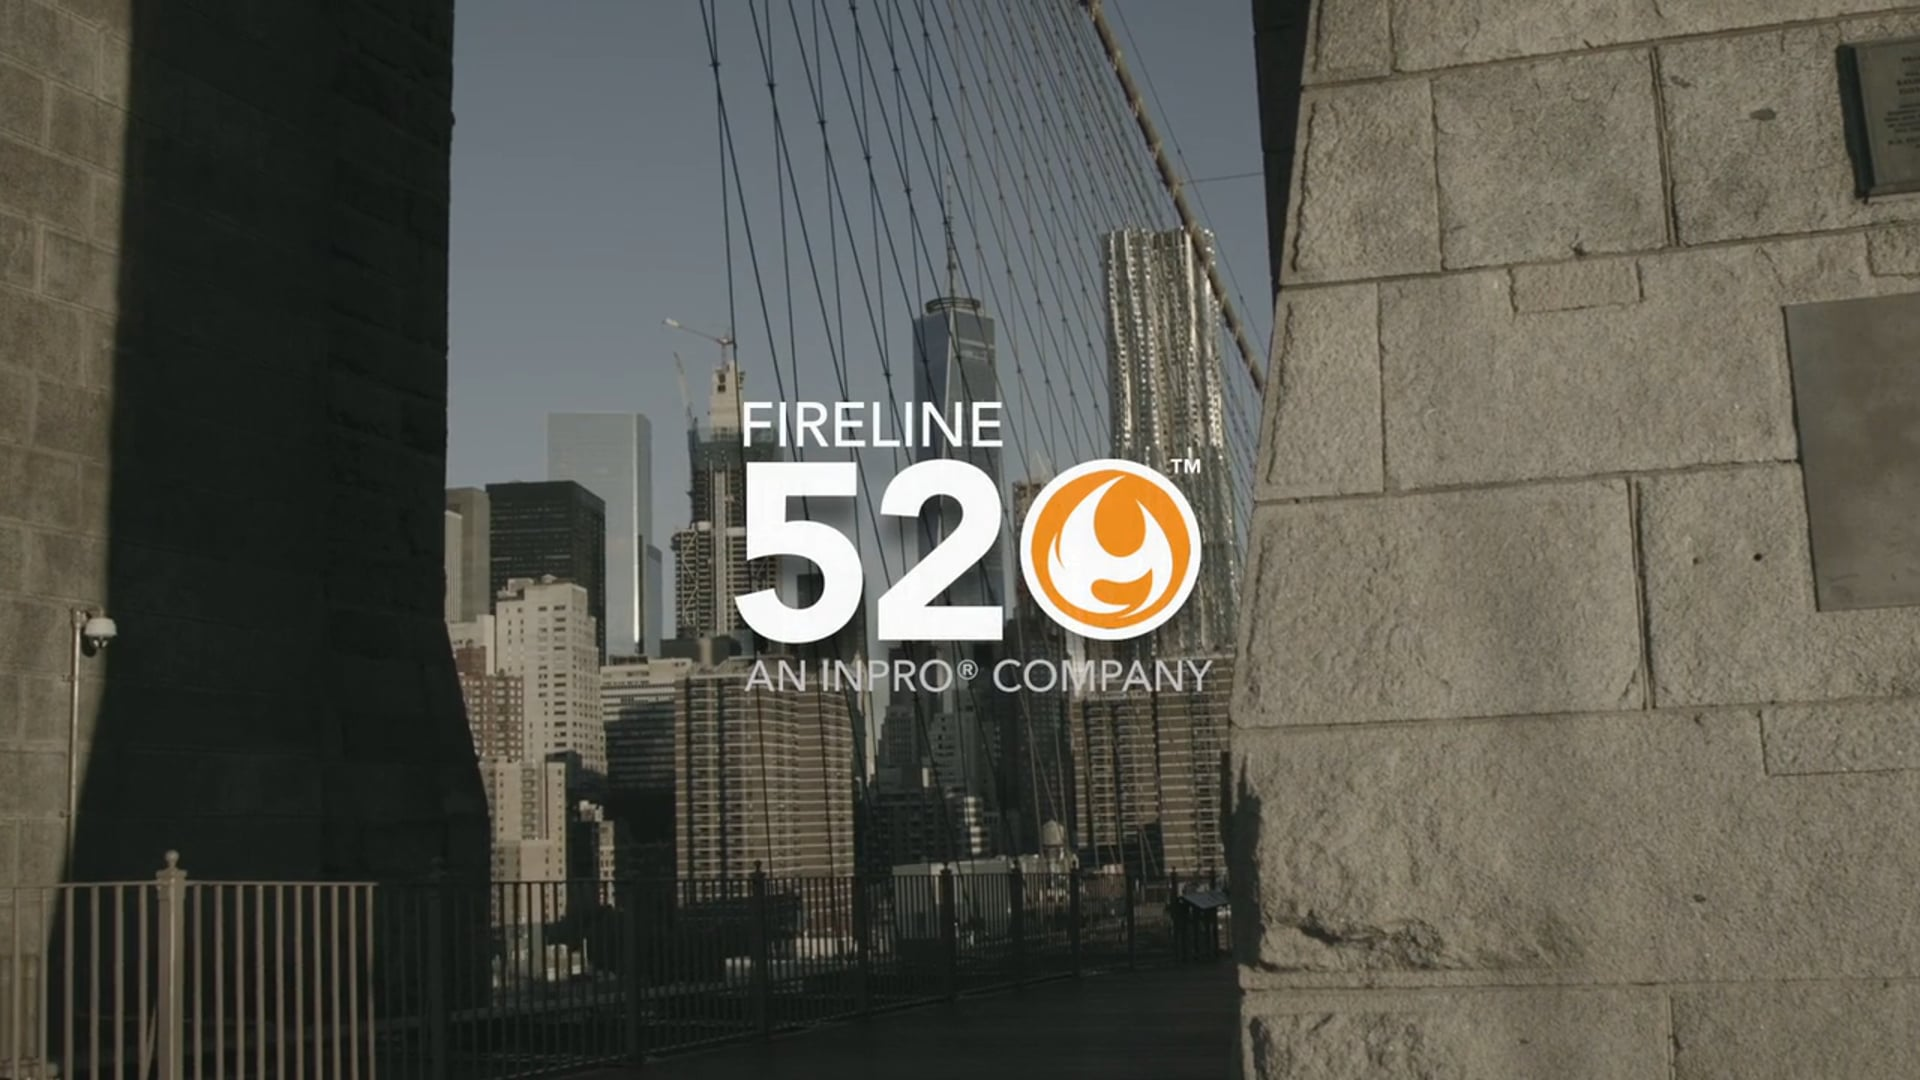 Inpro - September 11th: The inspiration behind Fireline 520® Fire Barriers